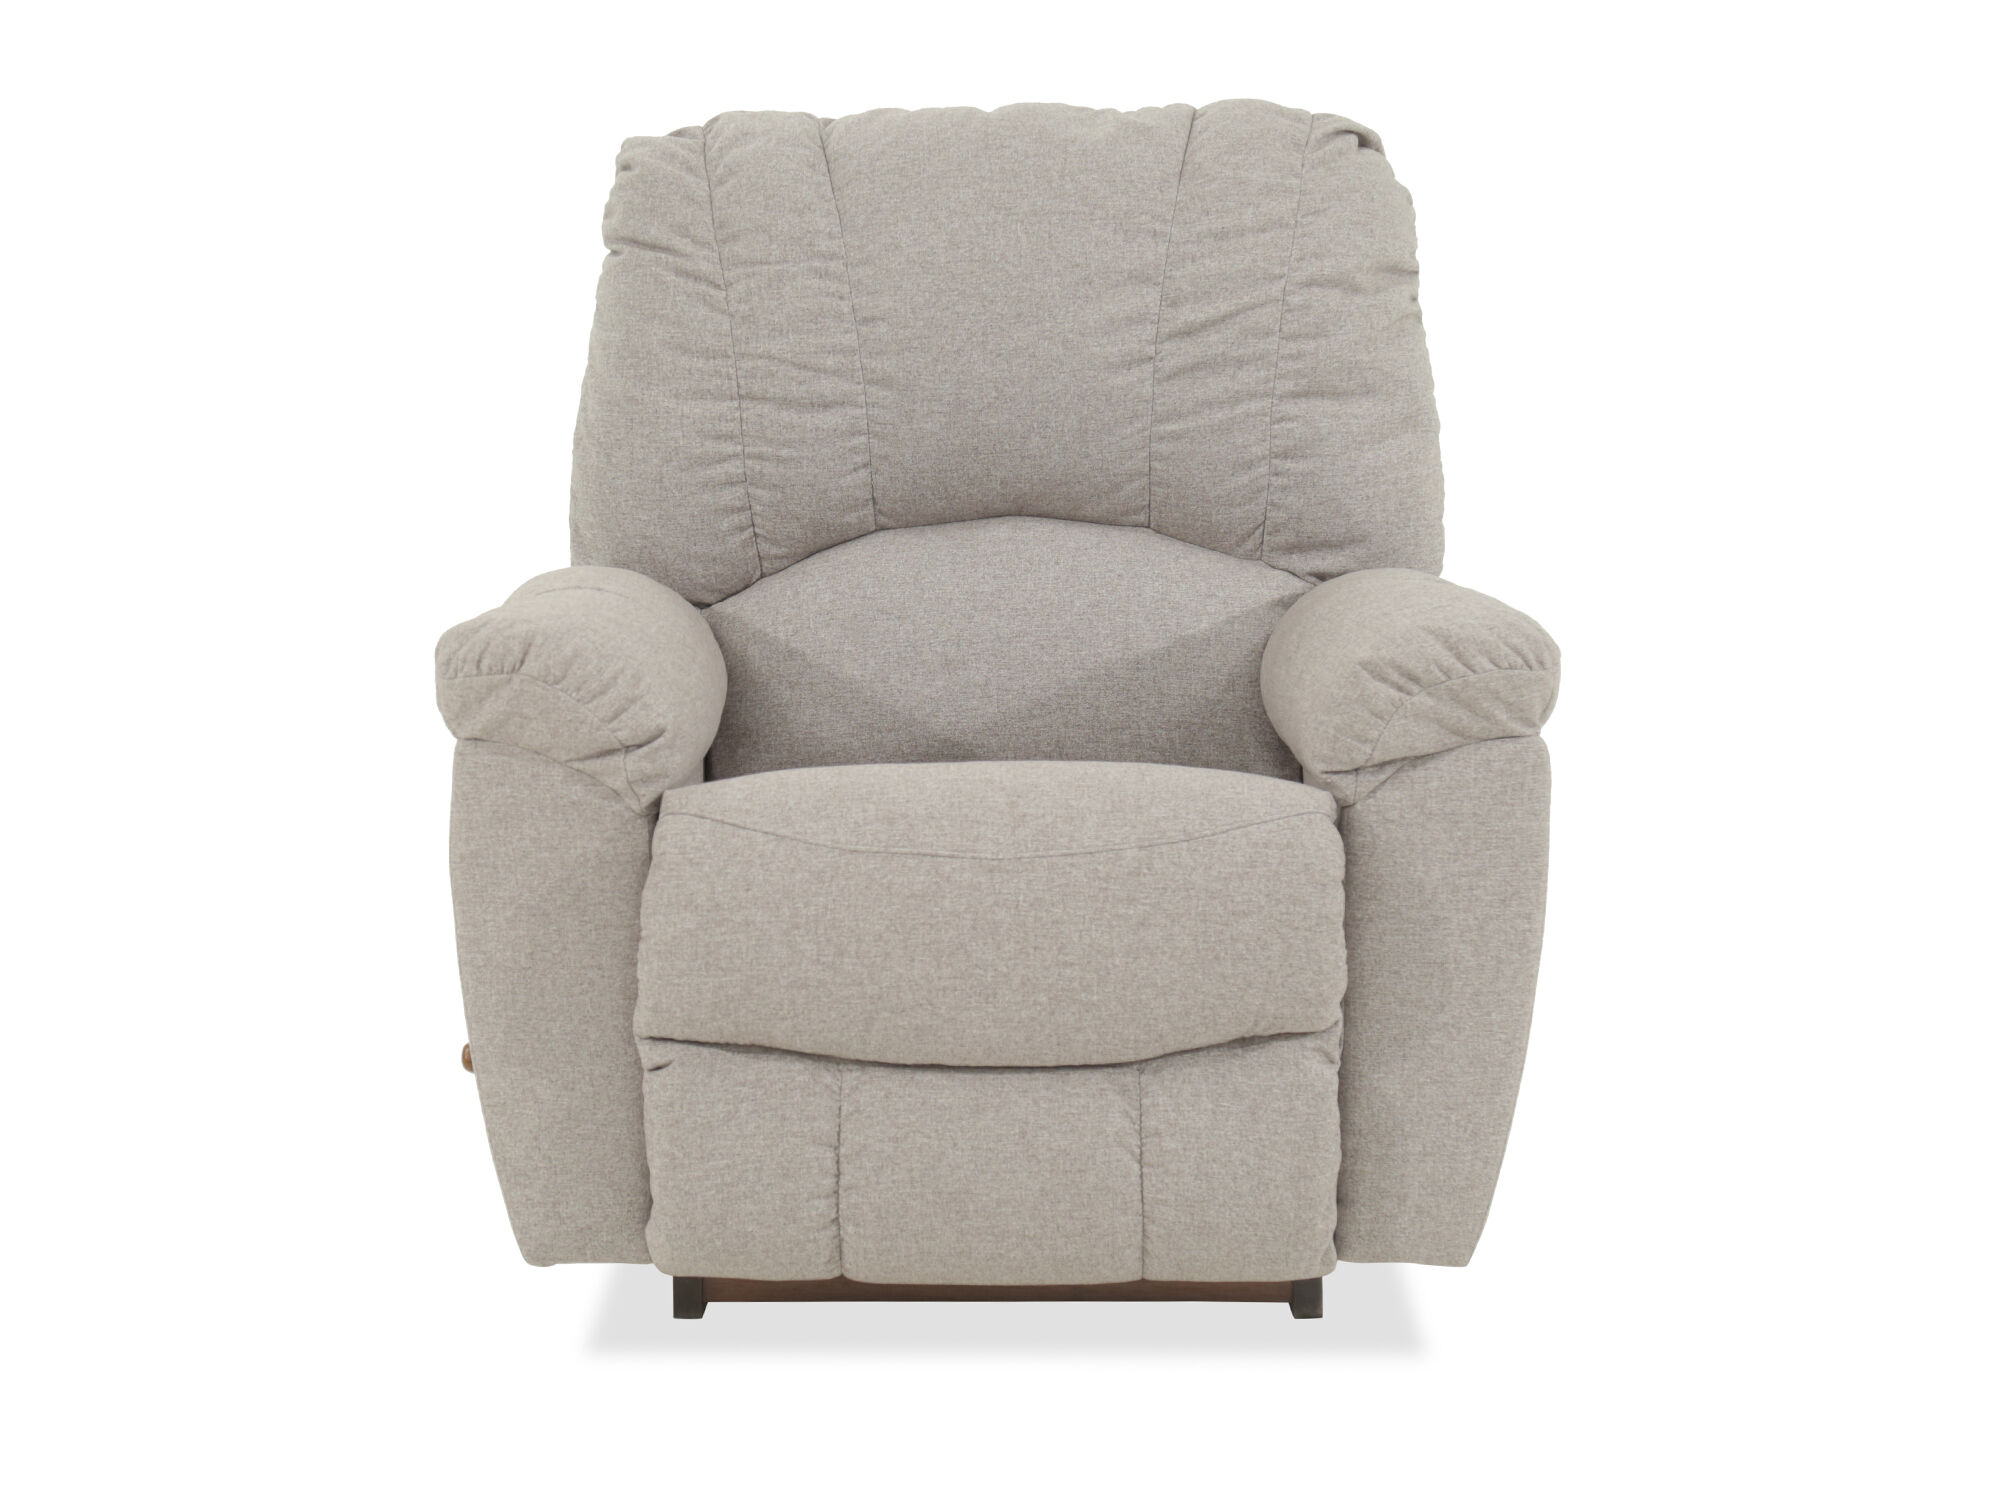 Gray Recliner Chair Casual 37 5 Quot Rocker Recliner In Gray Mathis Brothers